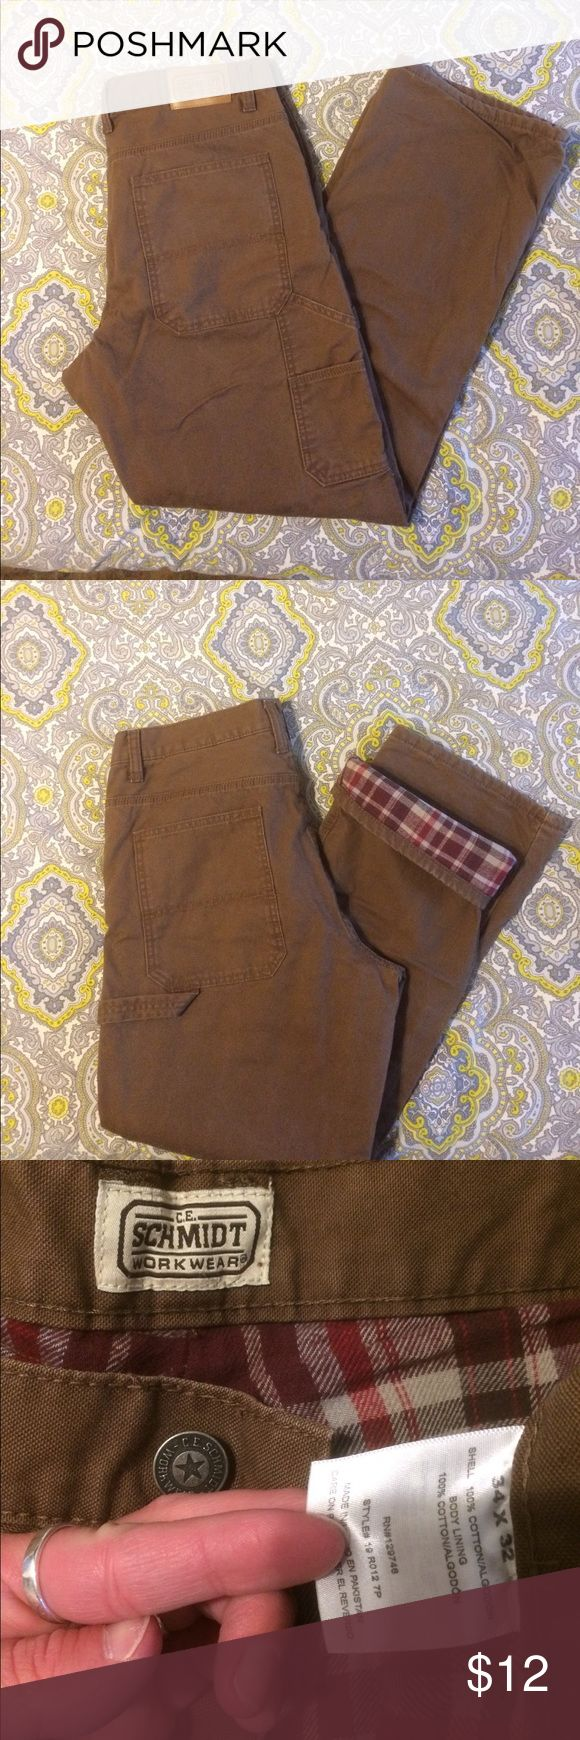 Men's utility carpenter work pants C.E. Schmidt brand. Brown utility carpenter pants. They have flannel lining in them! Like new! 34x32. Brown in color Pants